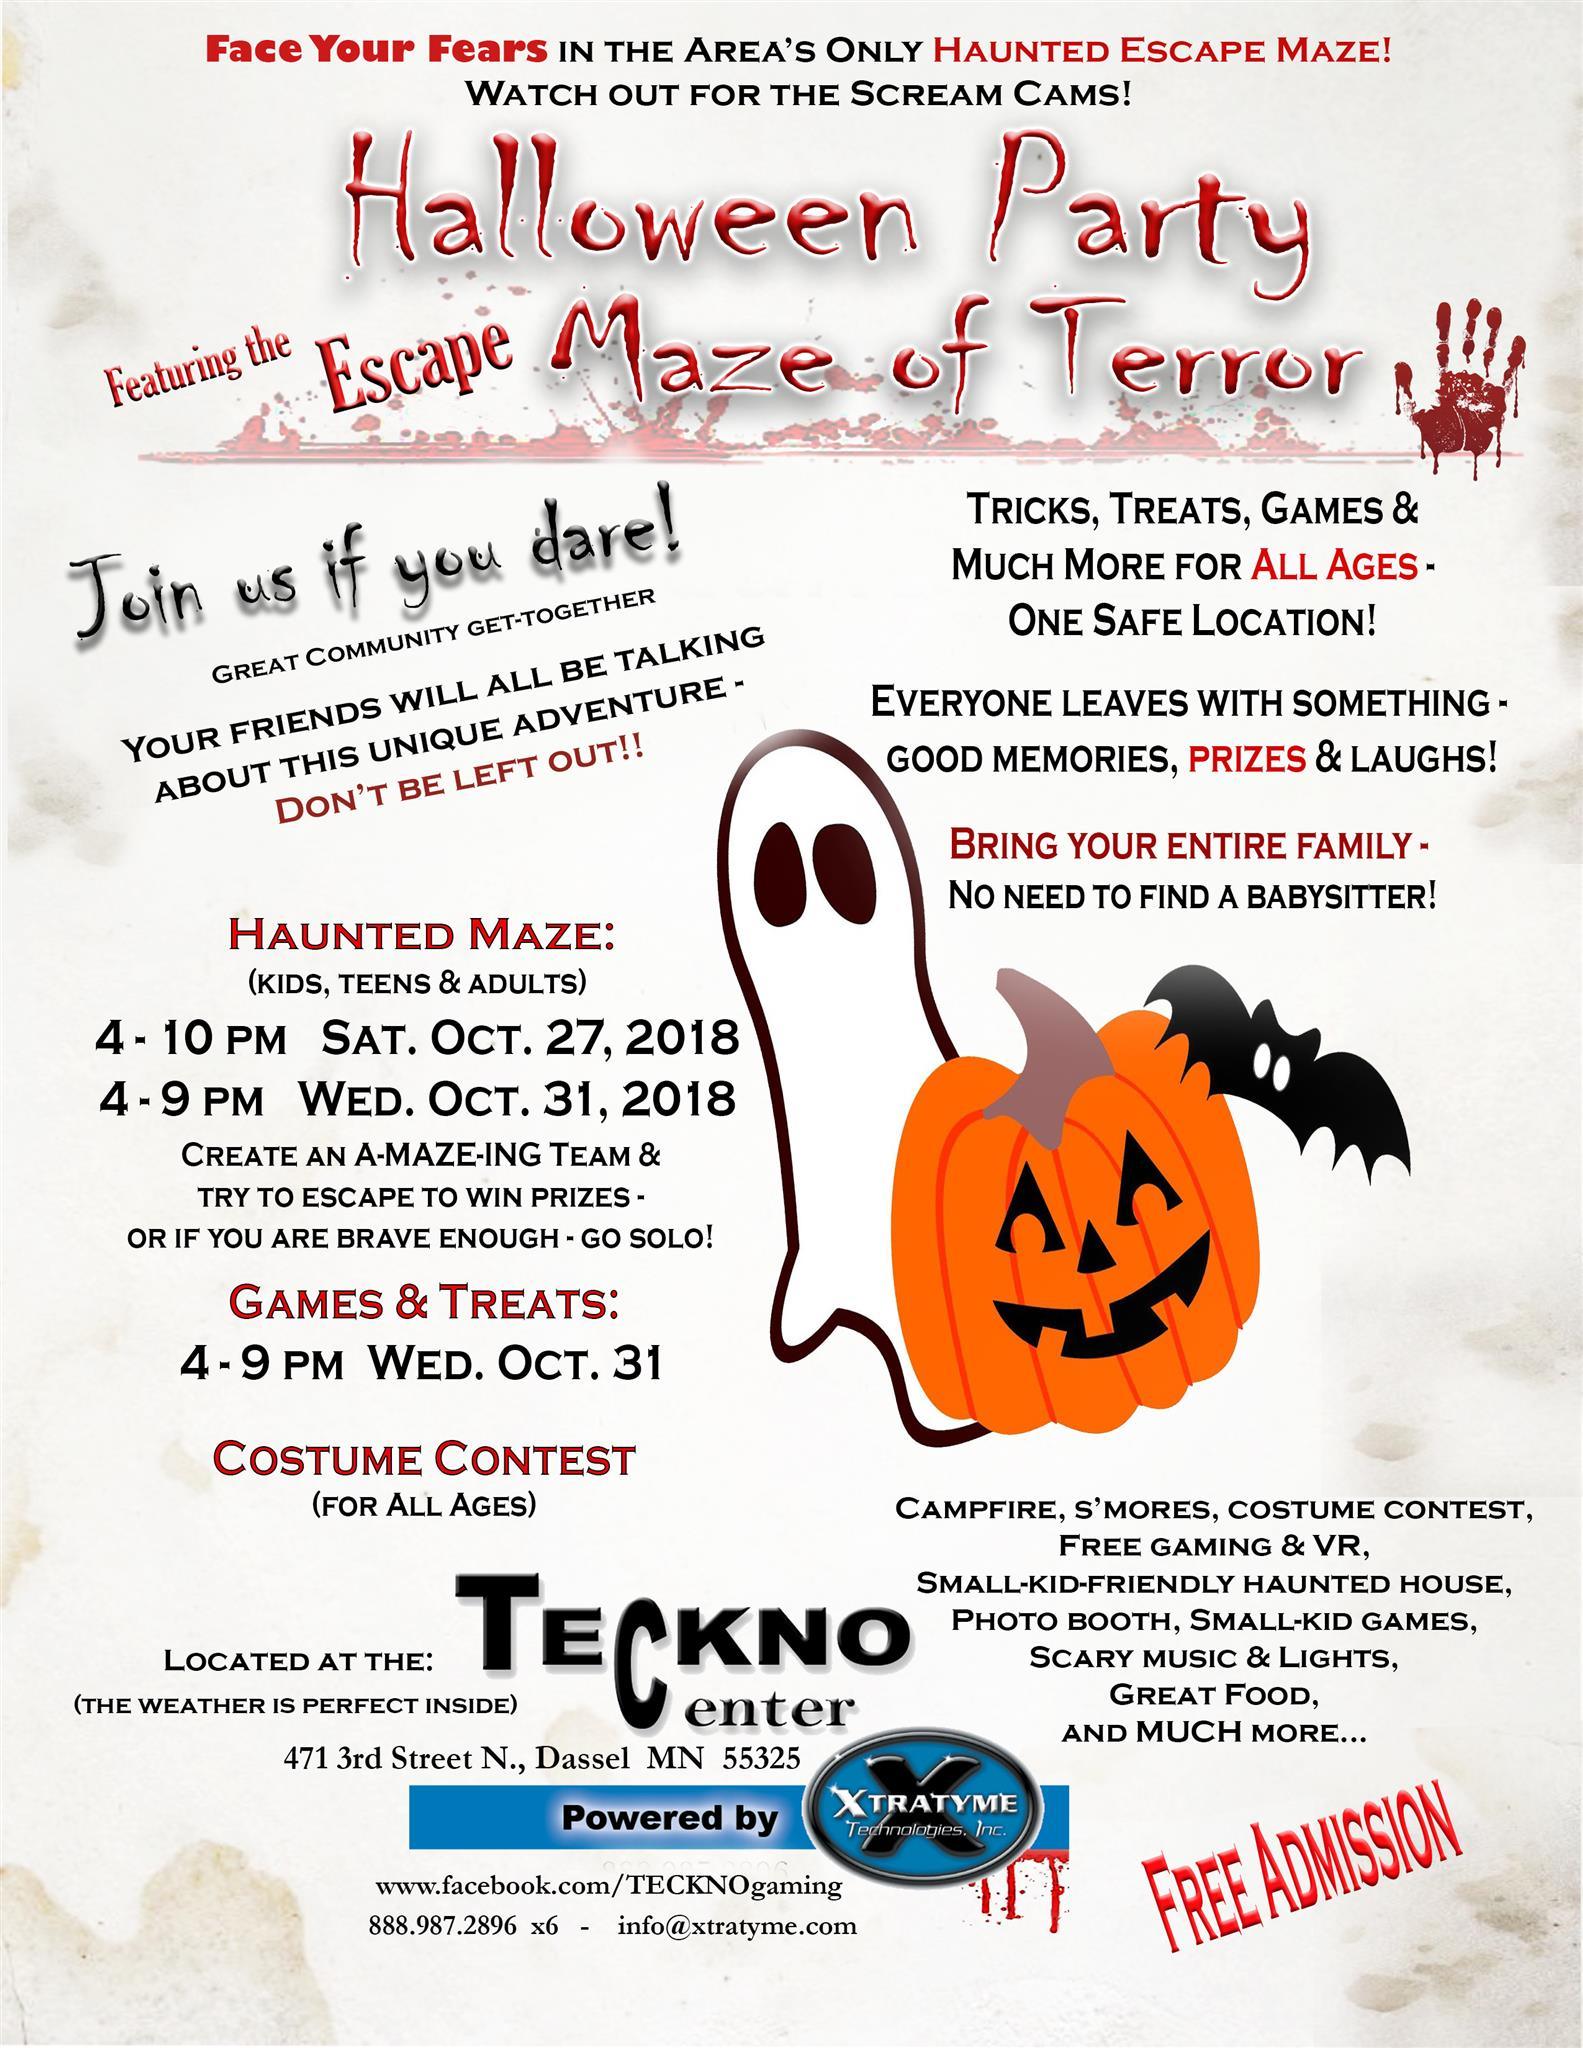 halloween party and escape maze of terror - dassel | macaroni kid